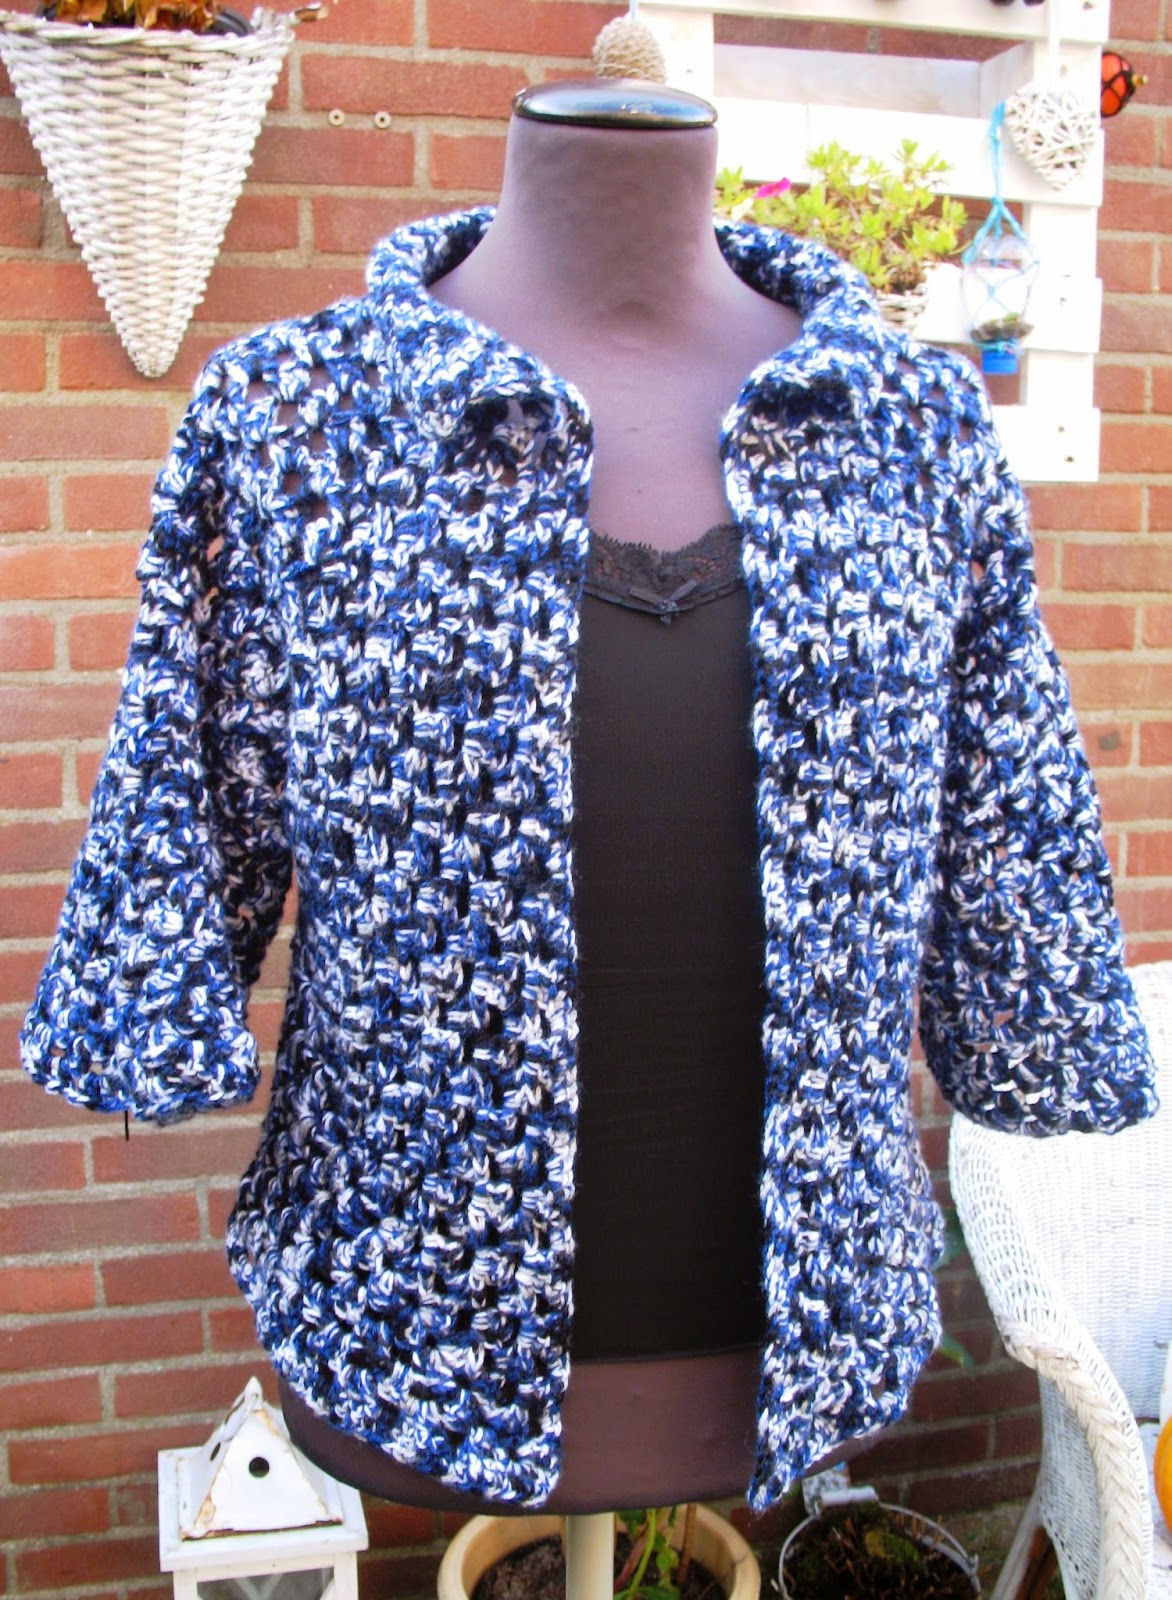 Atelier 39 de kleine haven 39 gehaakt granny square hexagon vest - Patroon effent ...